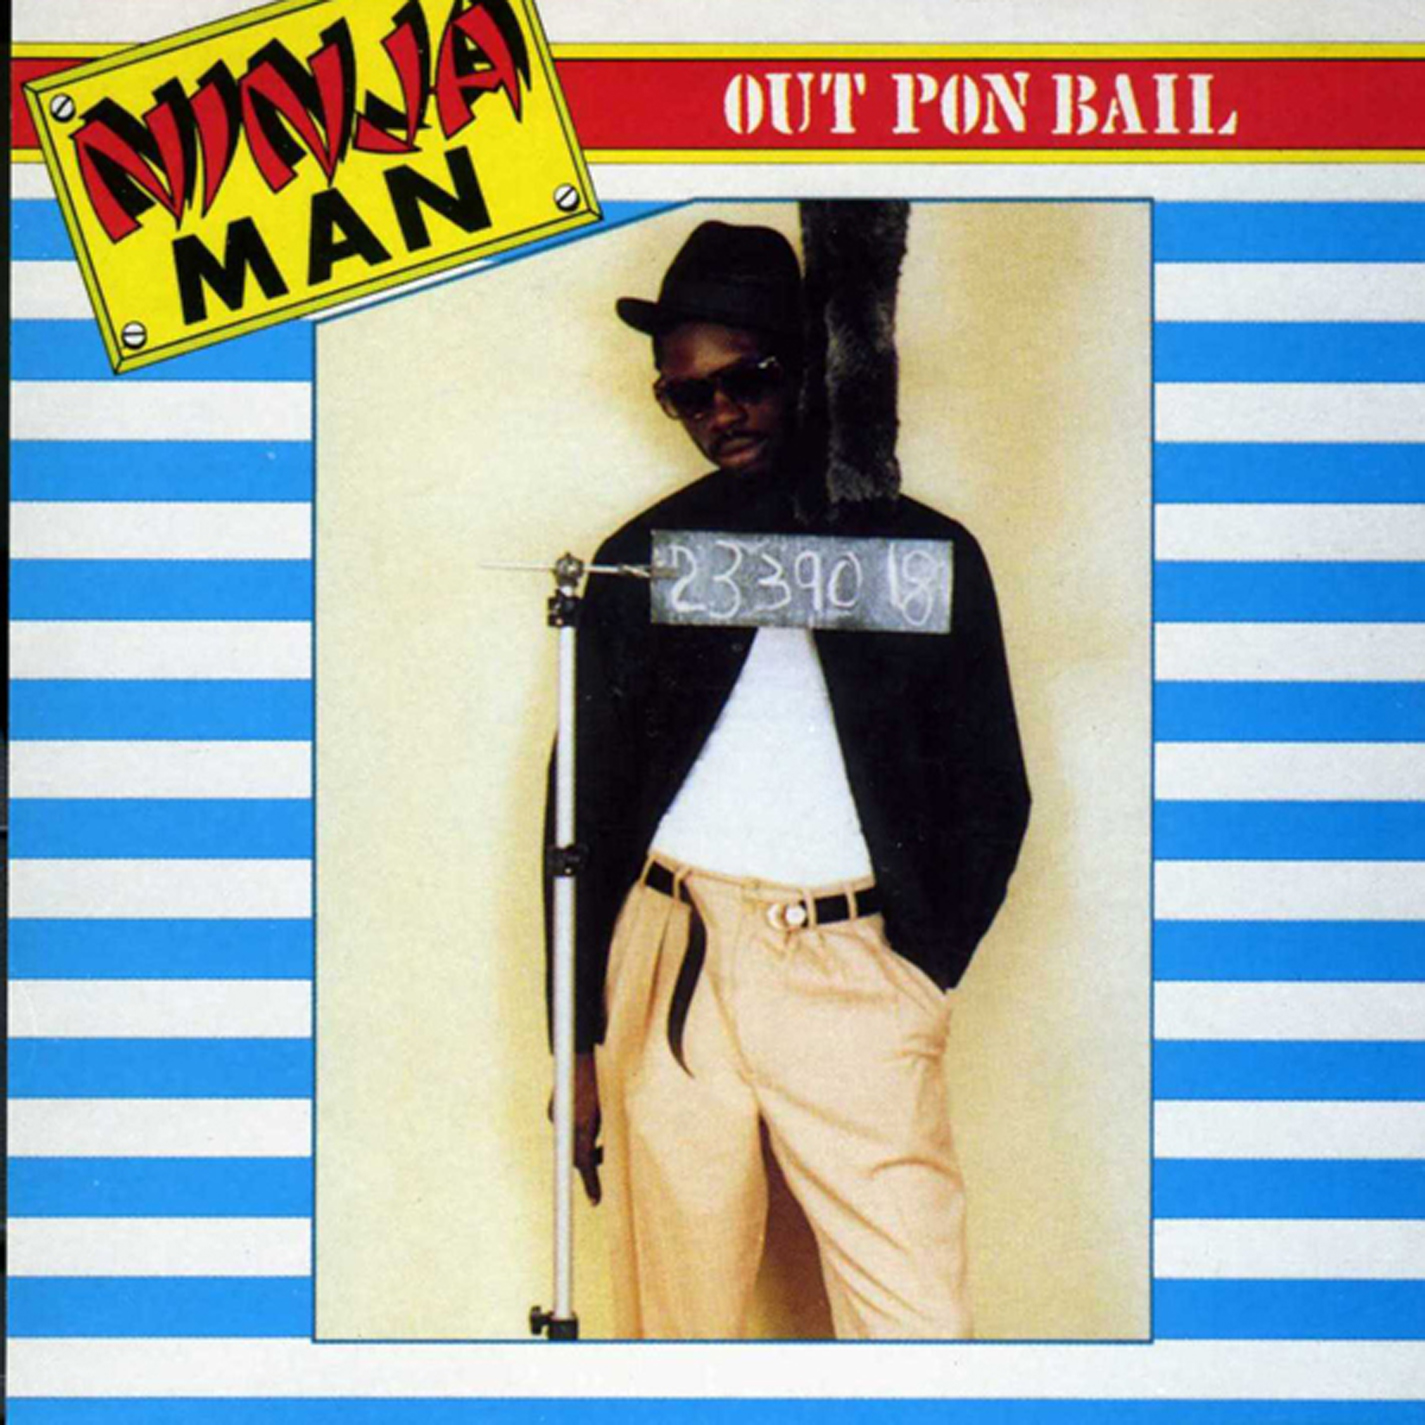 Ninja Man – Out Pon Bail